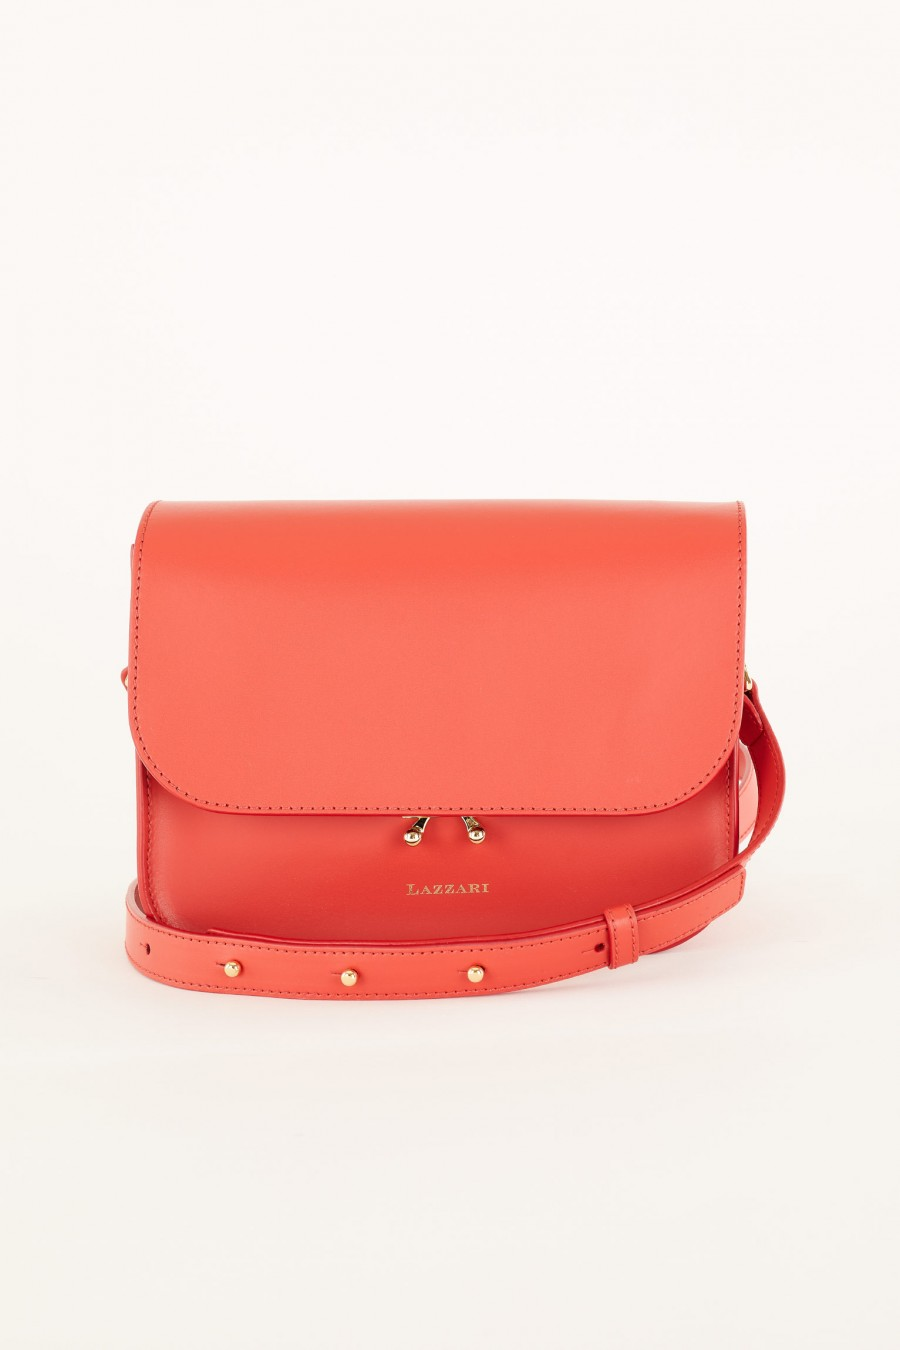 rectangular bag with detachable shoulder strap